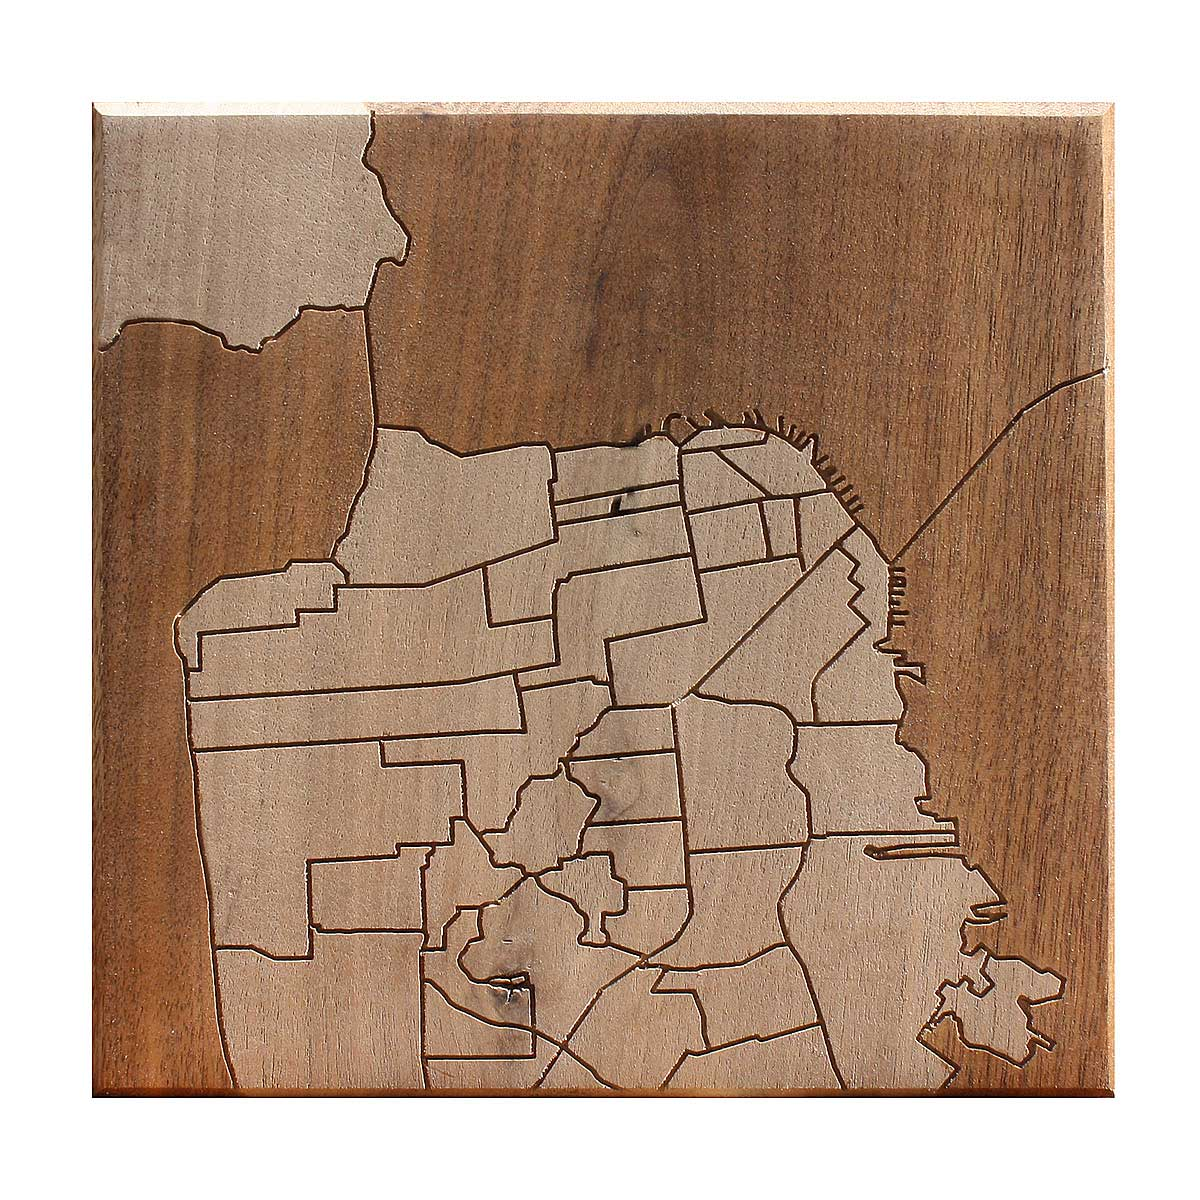 San Francisco Neighborhood Map Wooden Routing 1 Thumbnail